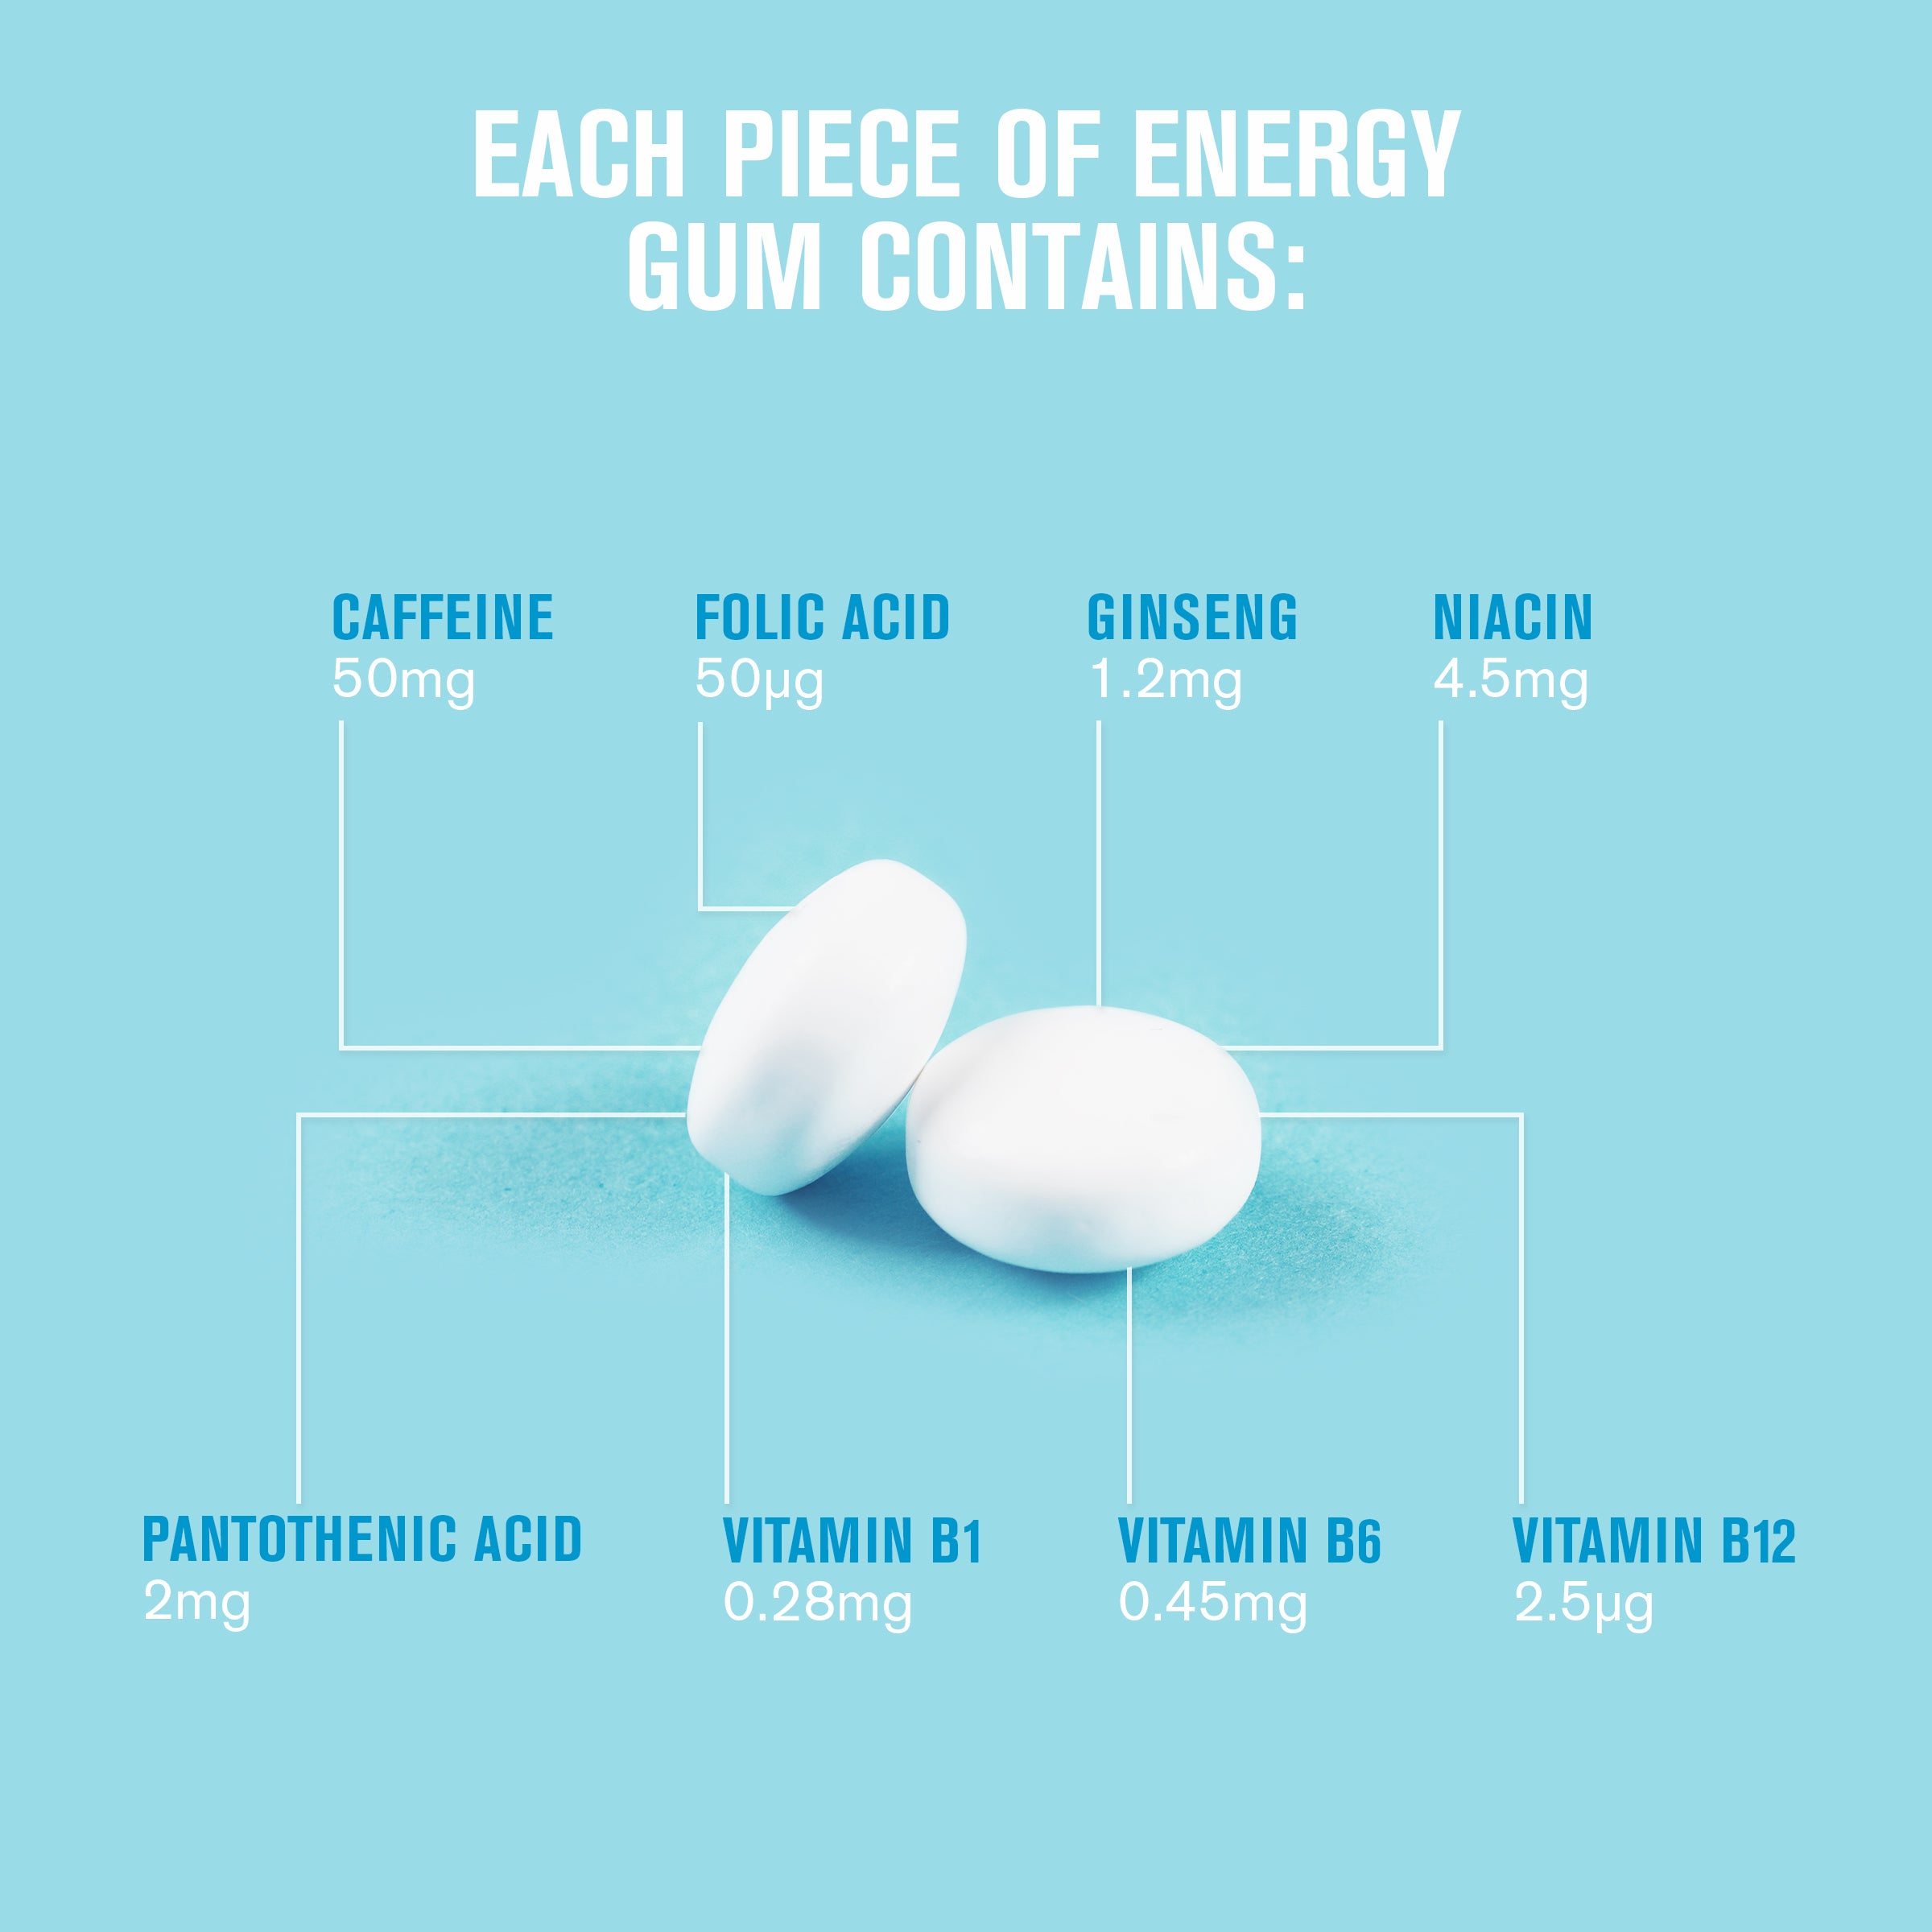 Ingredients of Energy Gum in detail